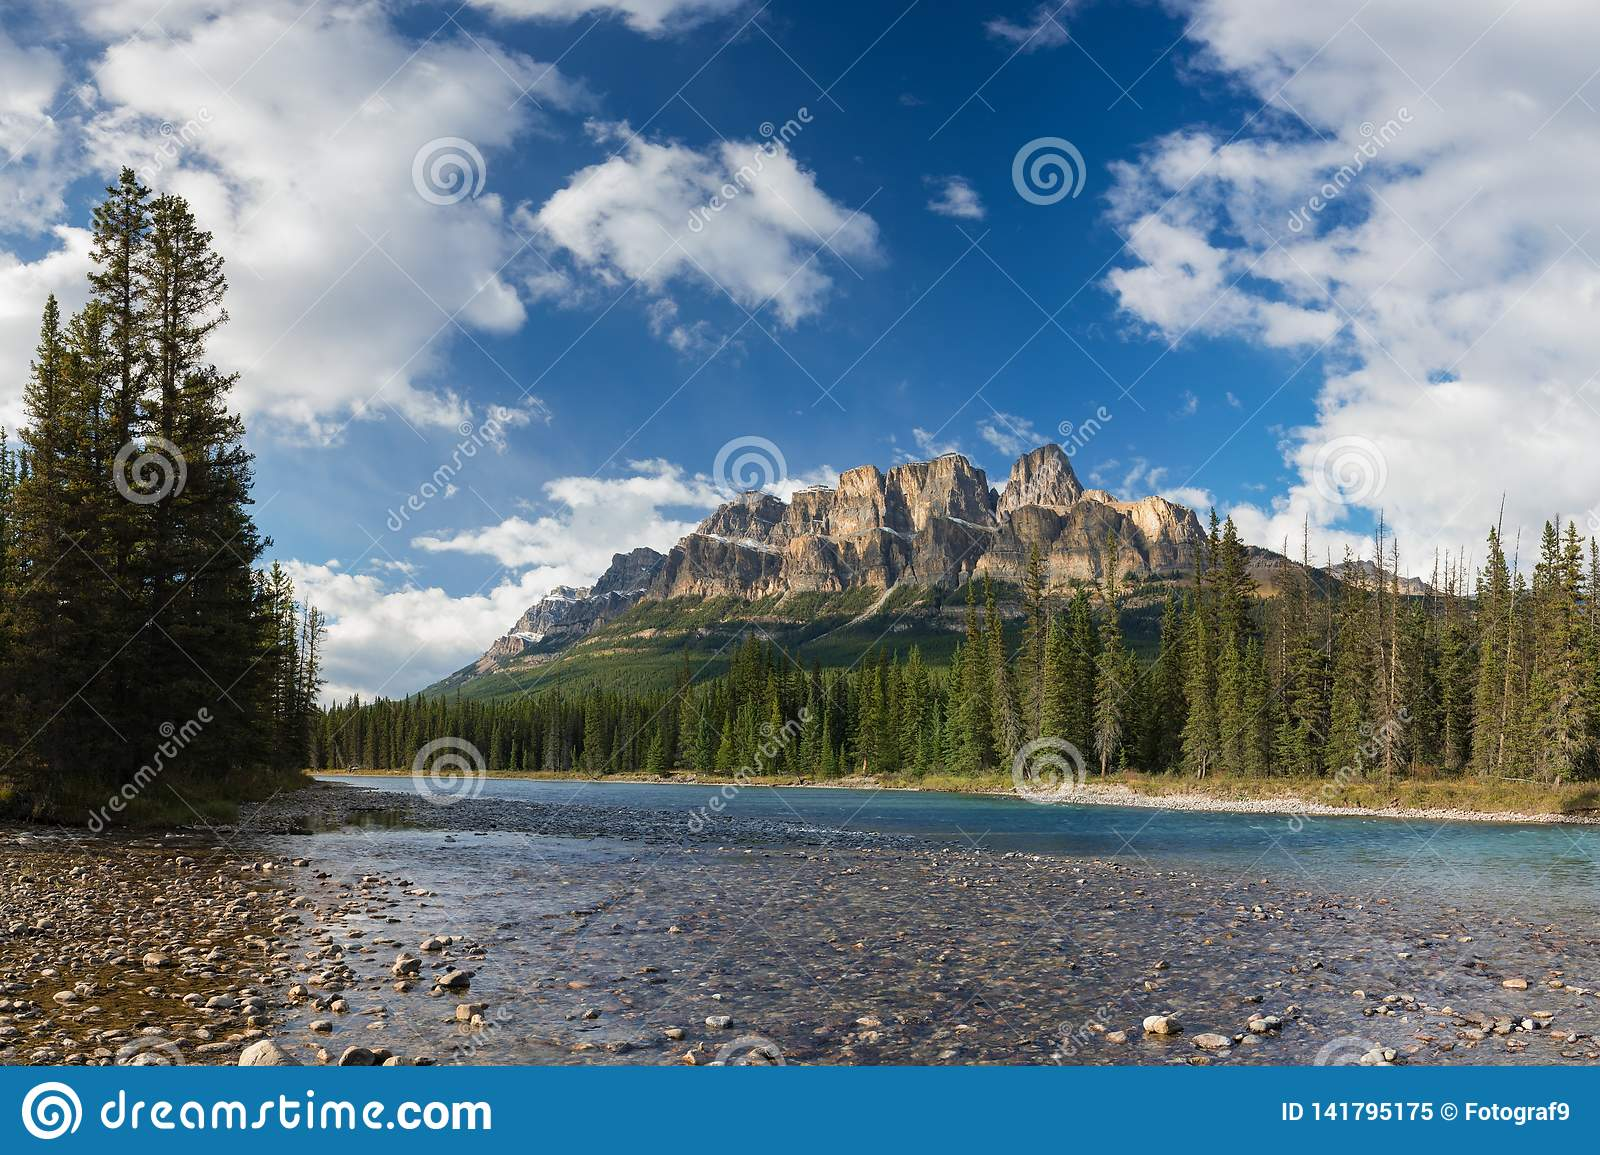 Castle Mountain in Banff National Park, Canada Bow valley under the surveillance of mighty Rocky Mountains. Beautiful summer scene